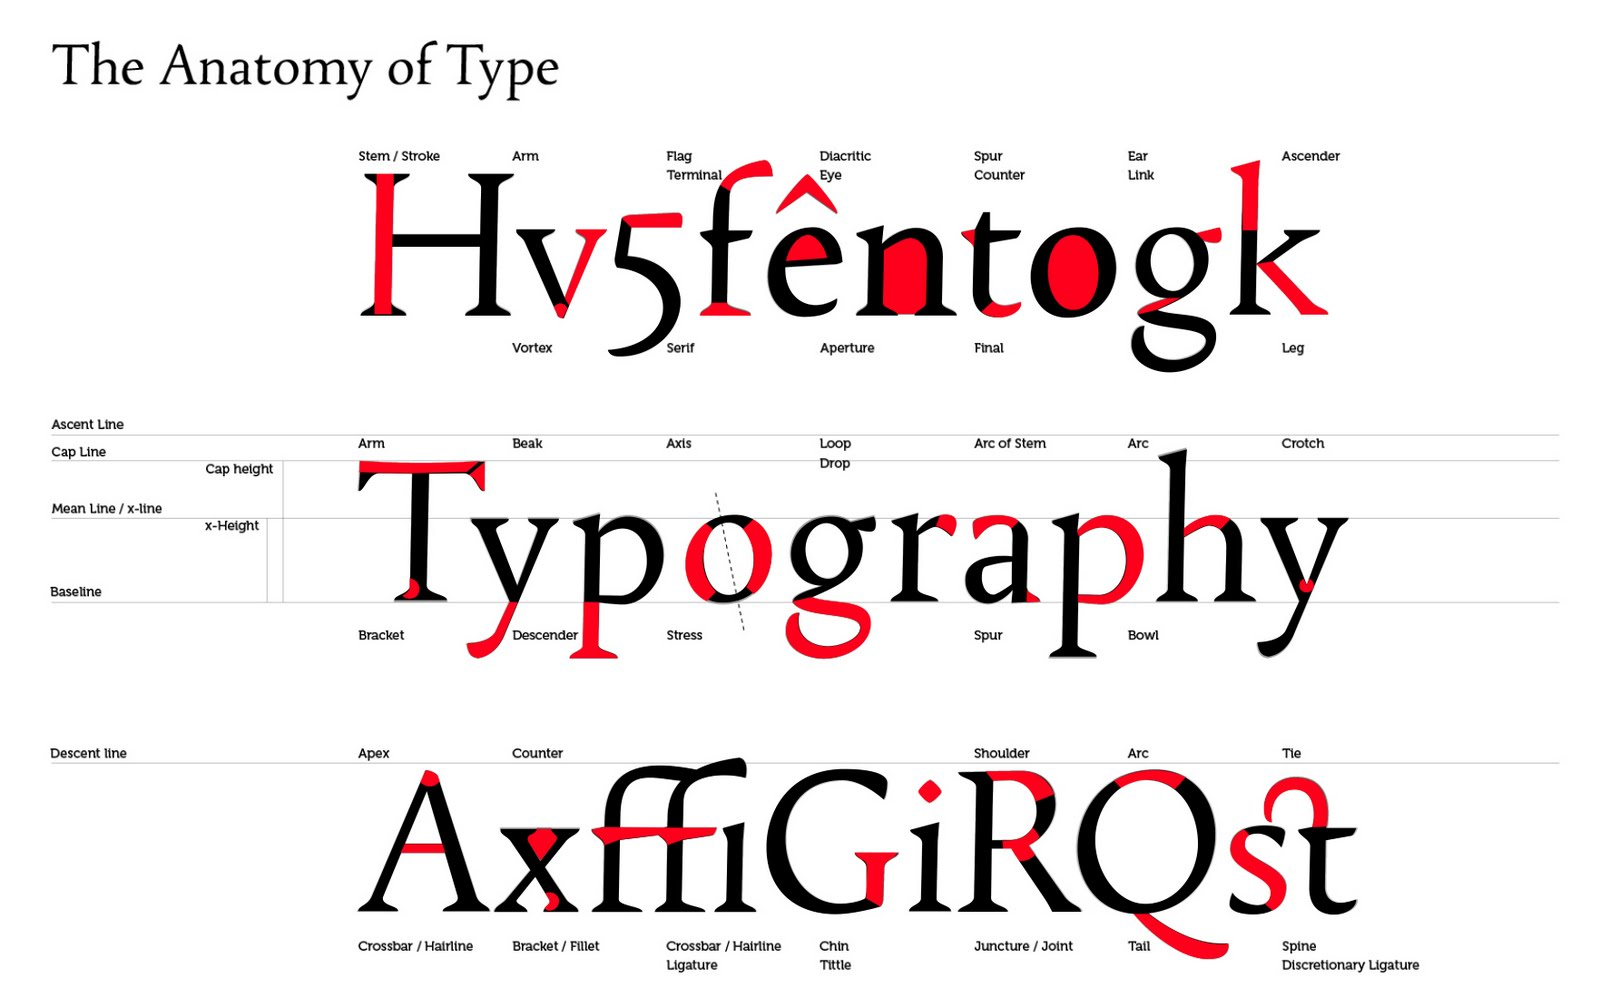 Kirart: The Anatomy of Type for DMA 233